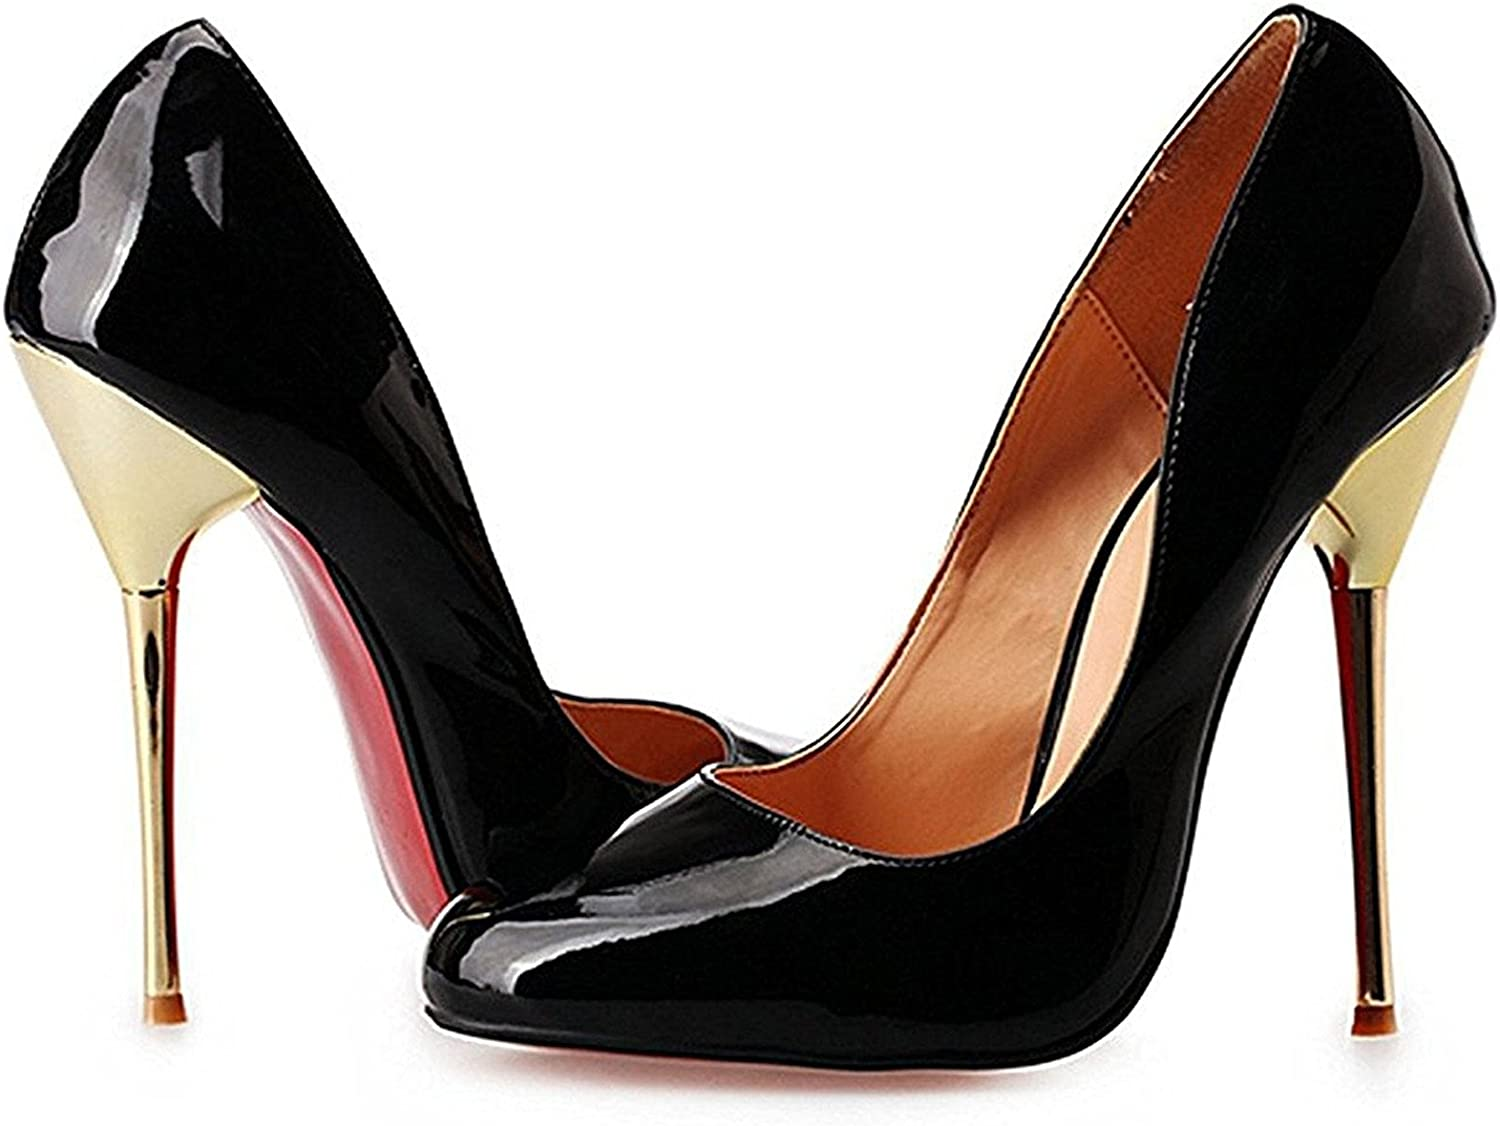 Reinhar Womens Pure color Slip On Pointed Toe Thin Style High Heels shoes